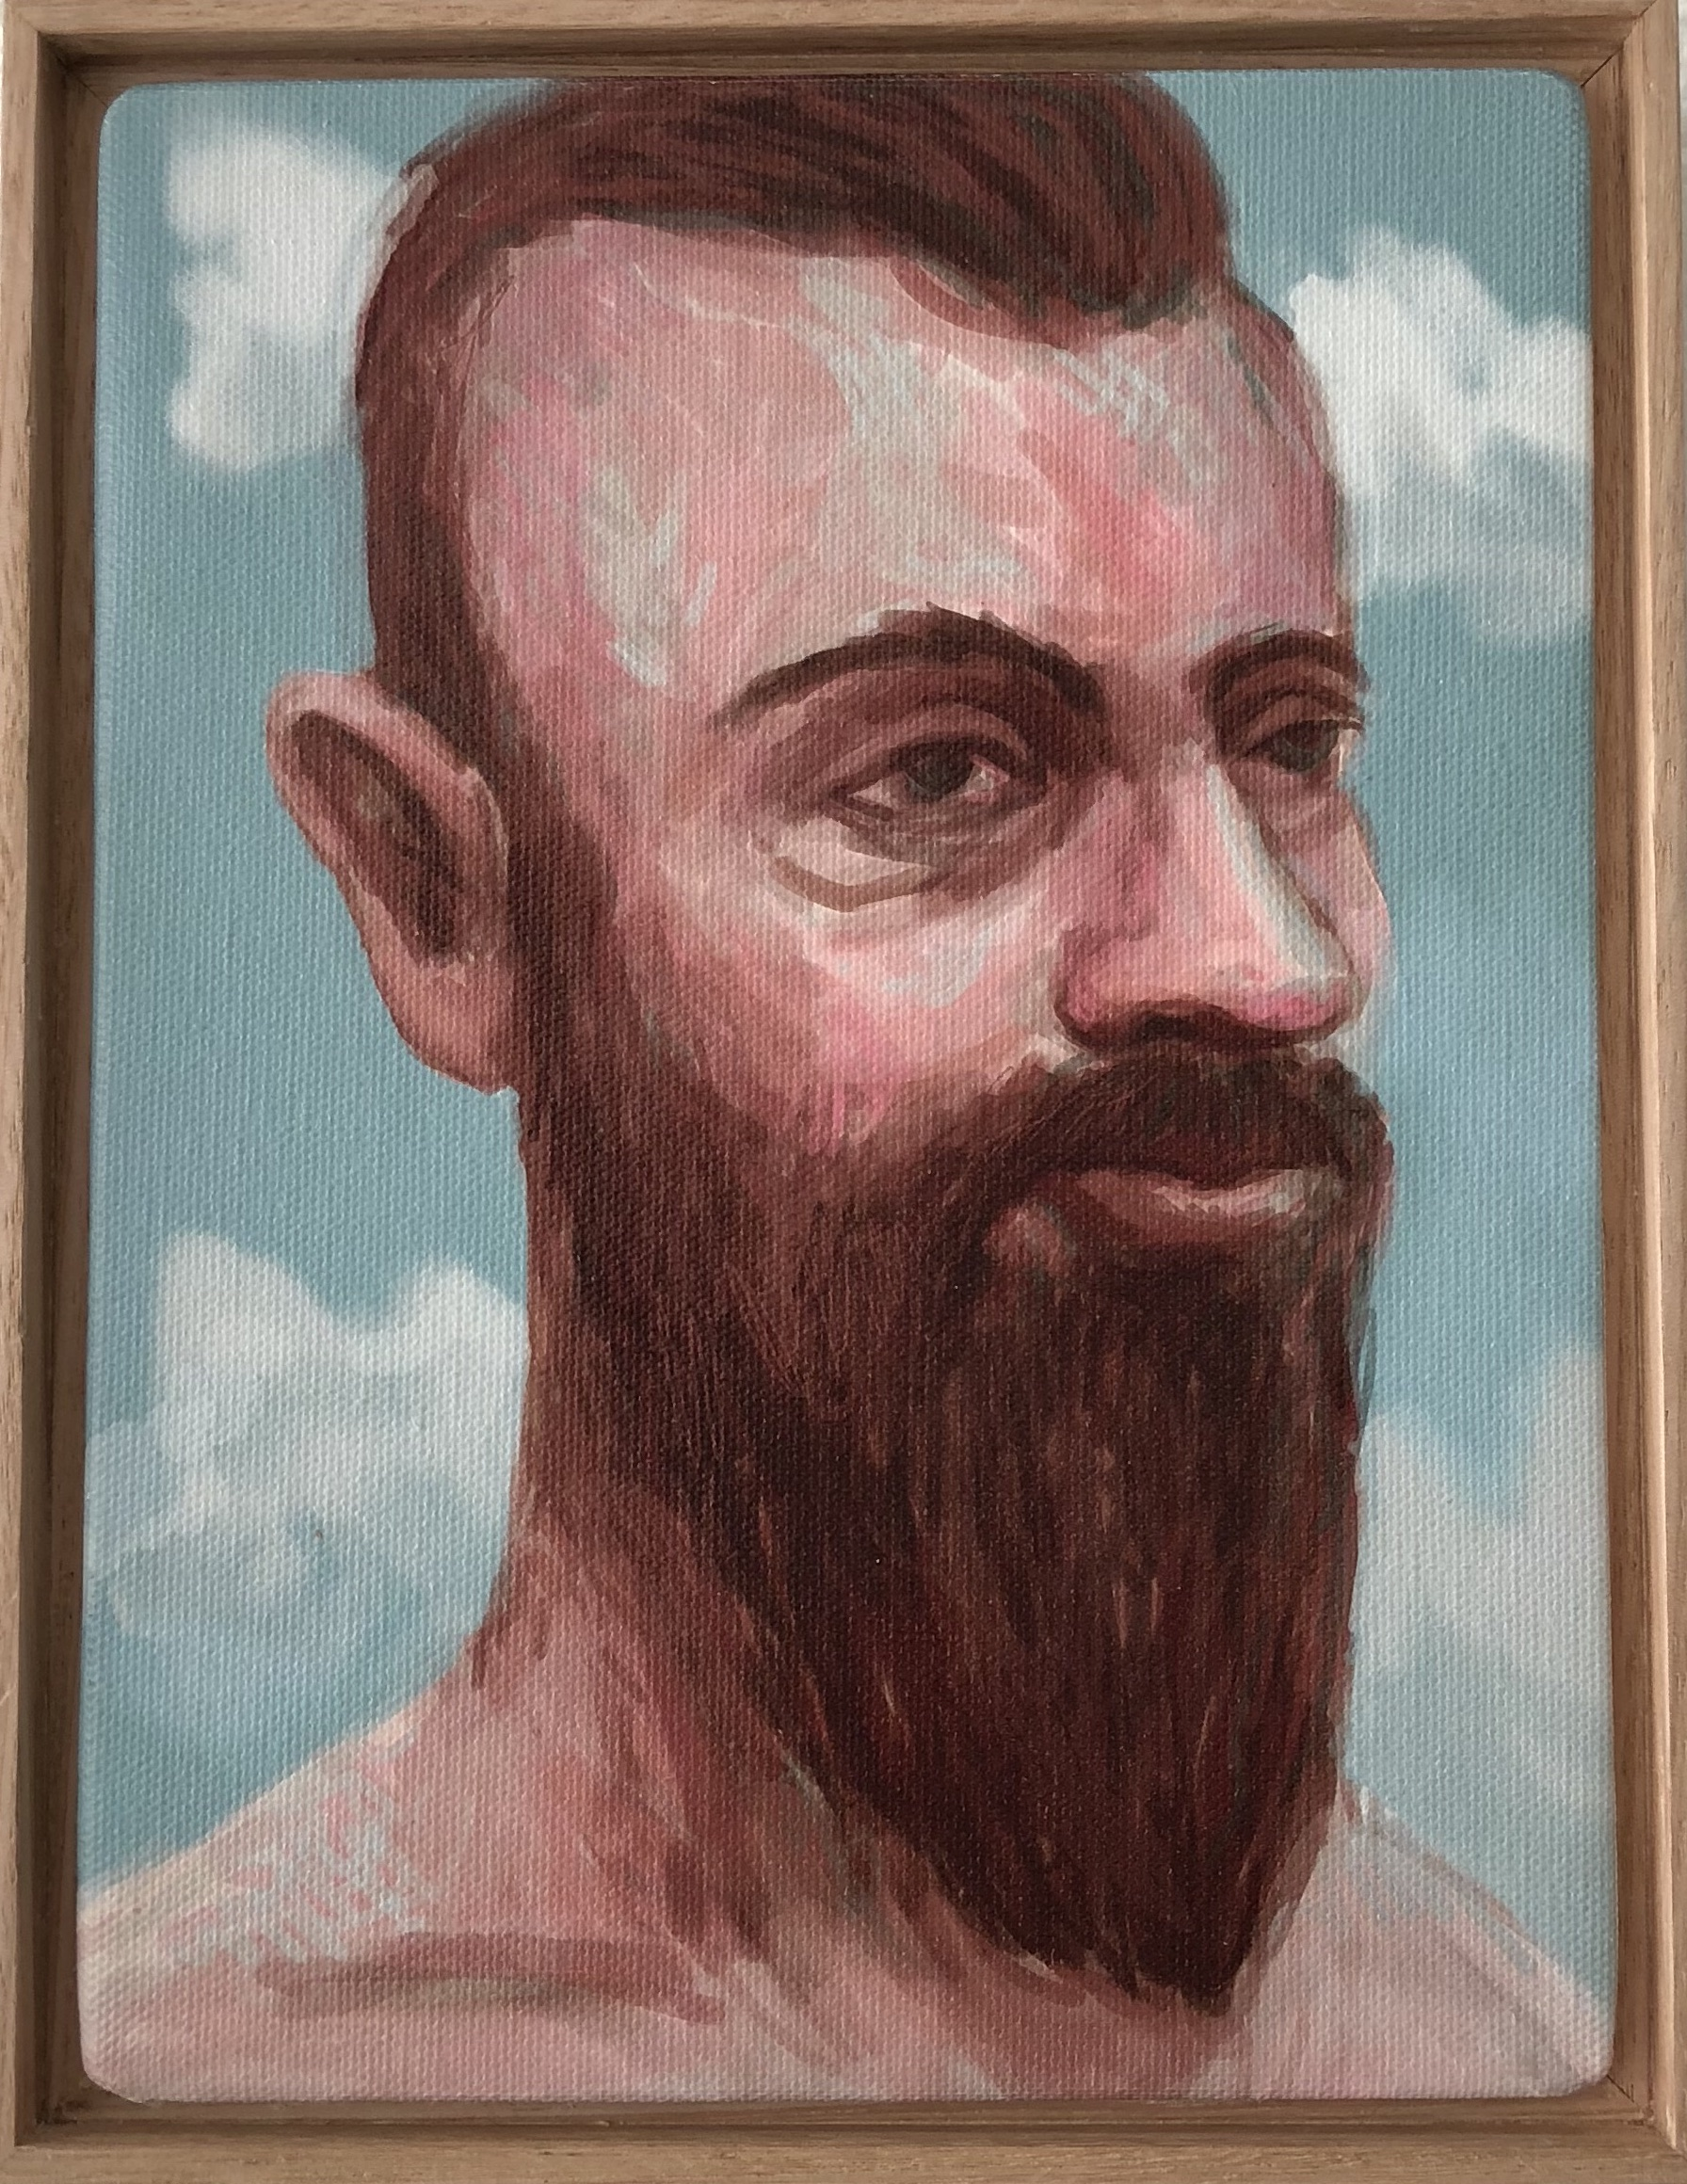 Peter Lankas  Hipster Hank  2018 ipad drawing, archival print on canvas 23.5 x 18cm framed Artist Proof + edition of 10 $285.00 each (AP + 10 available)  edition includes framing